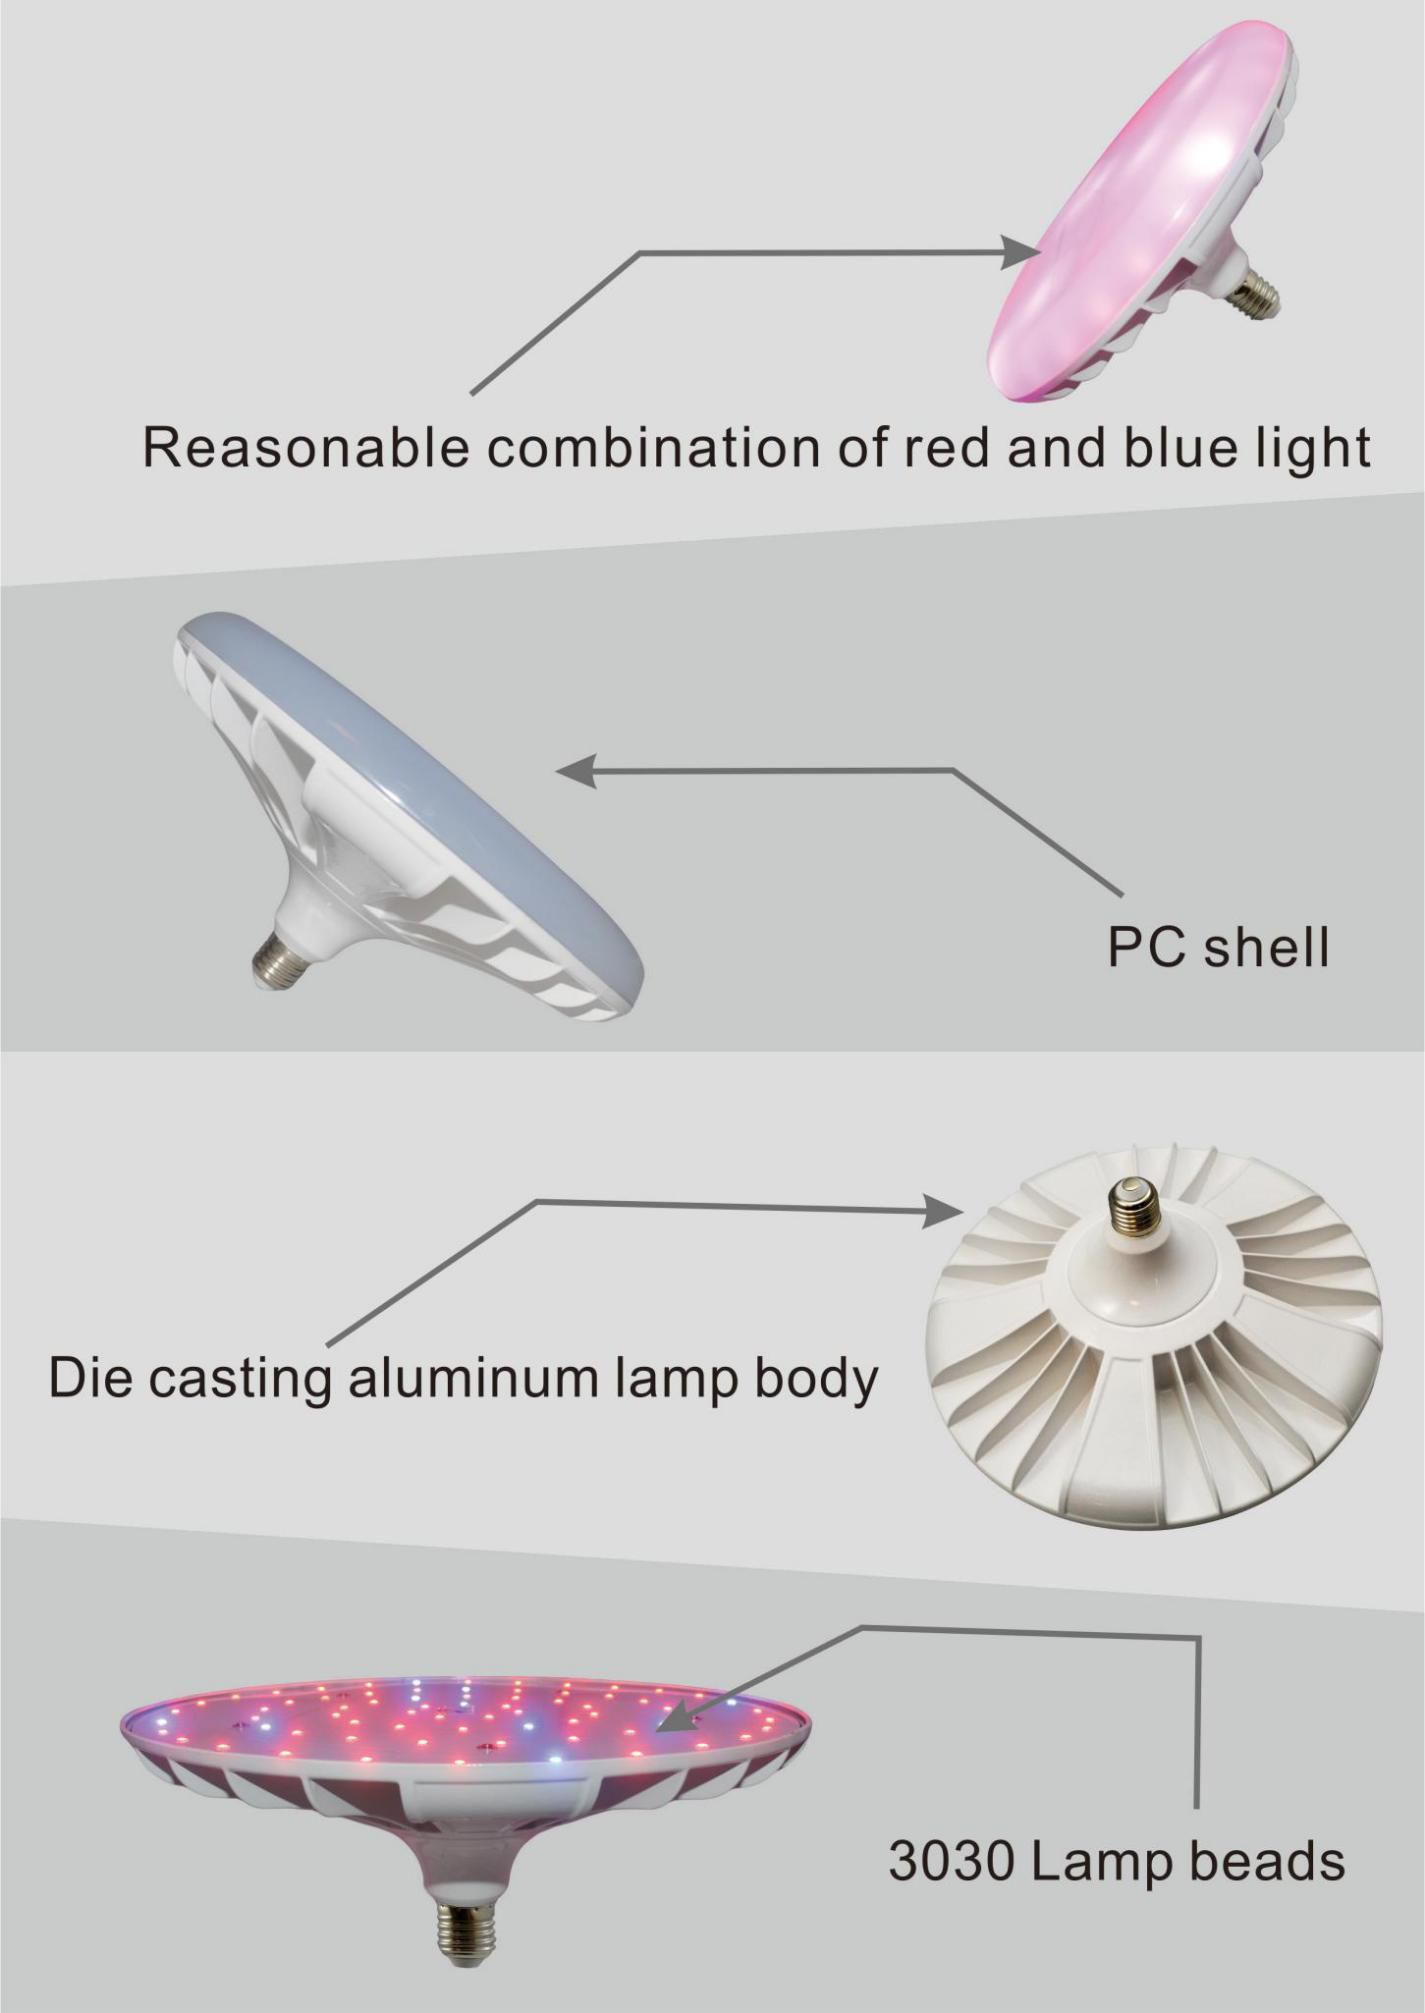 12 Brand COB SMD 20W 120 Degree E27 CE RoHS FCC Approved Full spectrum Led UFO Grow Light For Indoor Plant